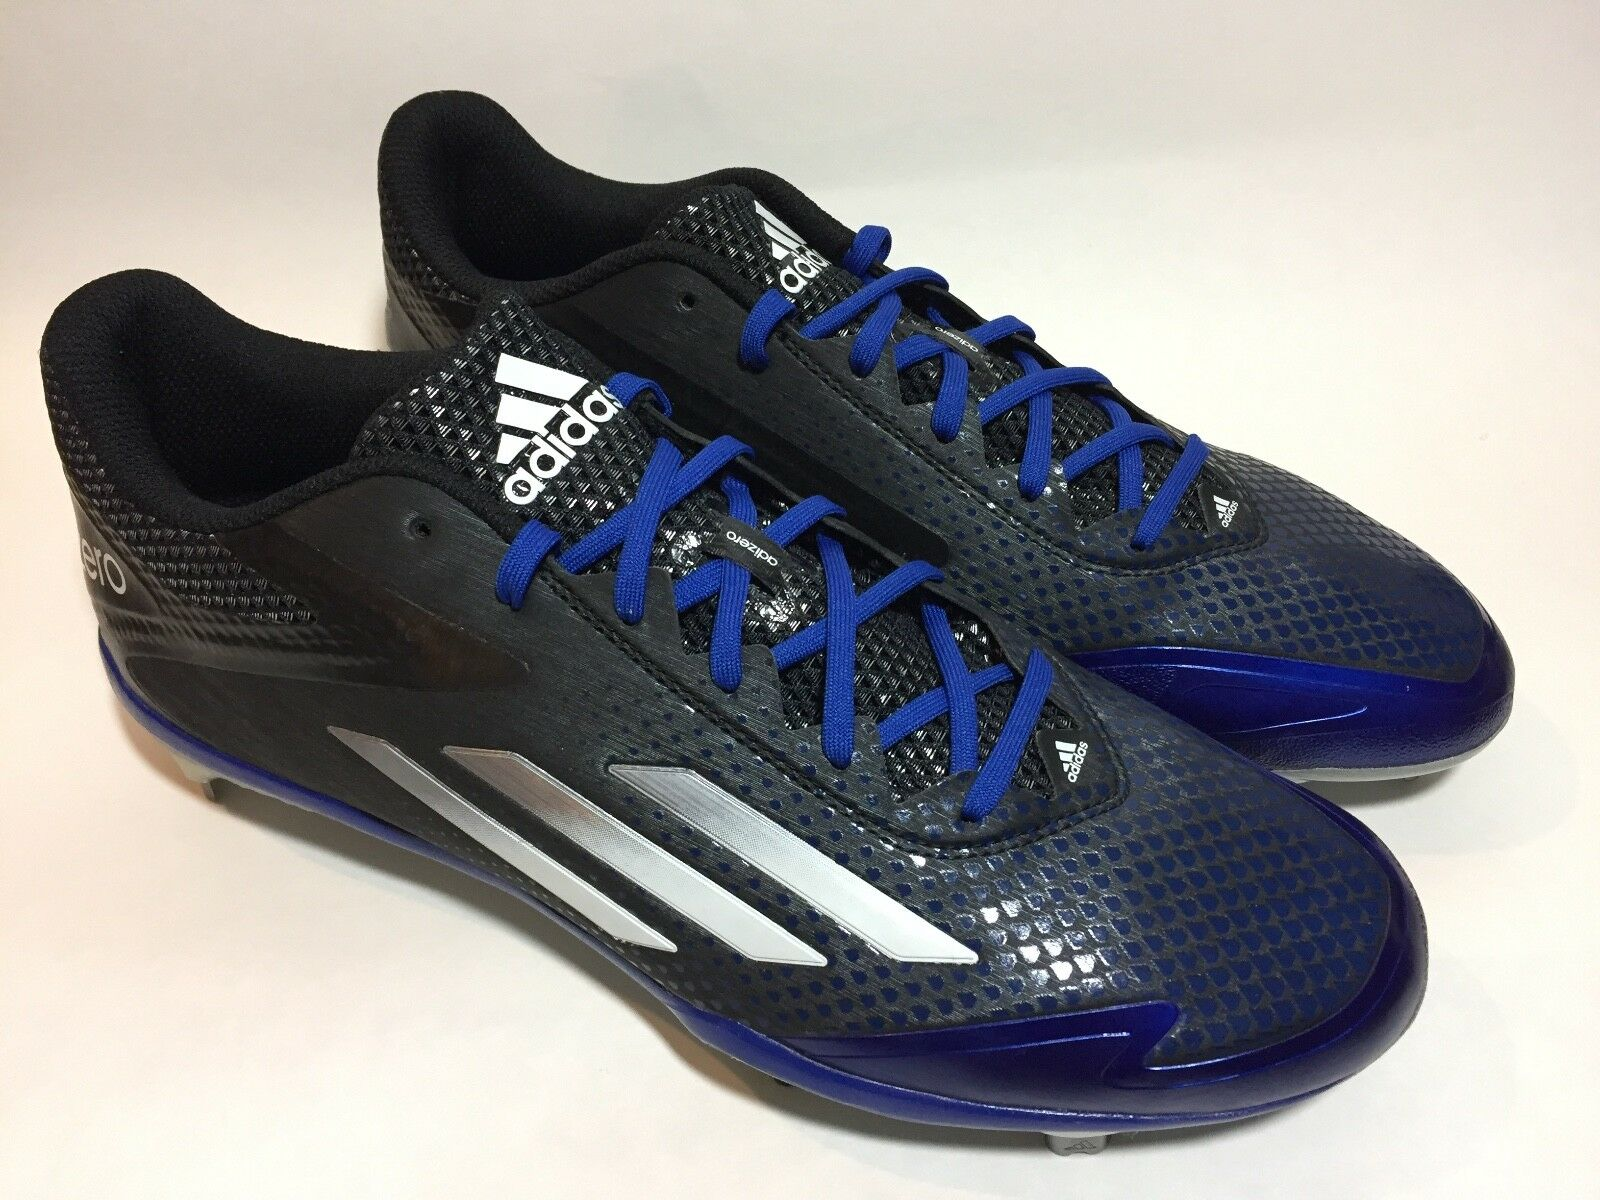 Adidas Mens Soccer Metal Cleats Shoes Adizero Sz 11 Blue Black White  ART D70253 best-selling model of the brand